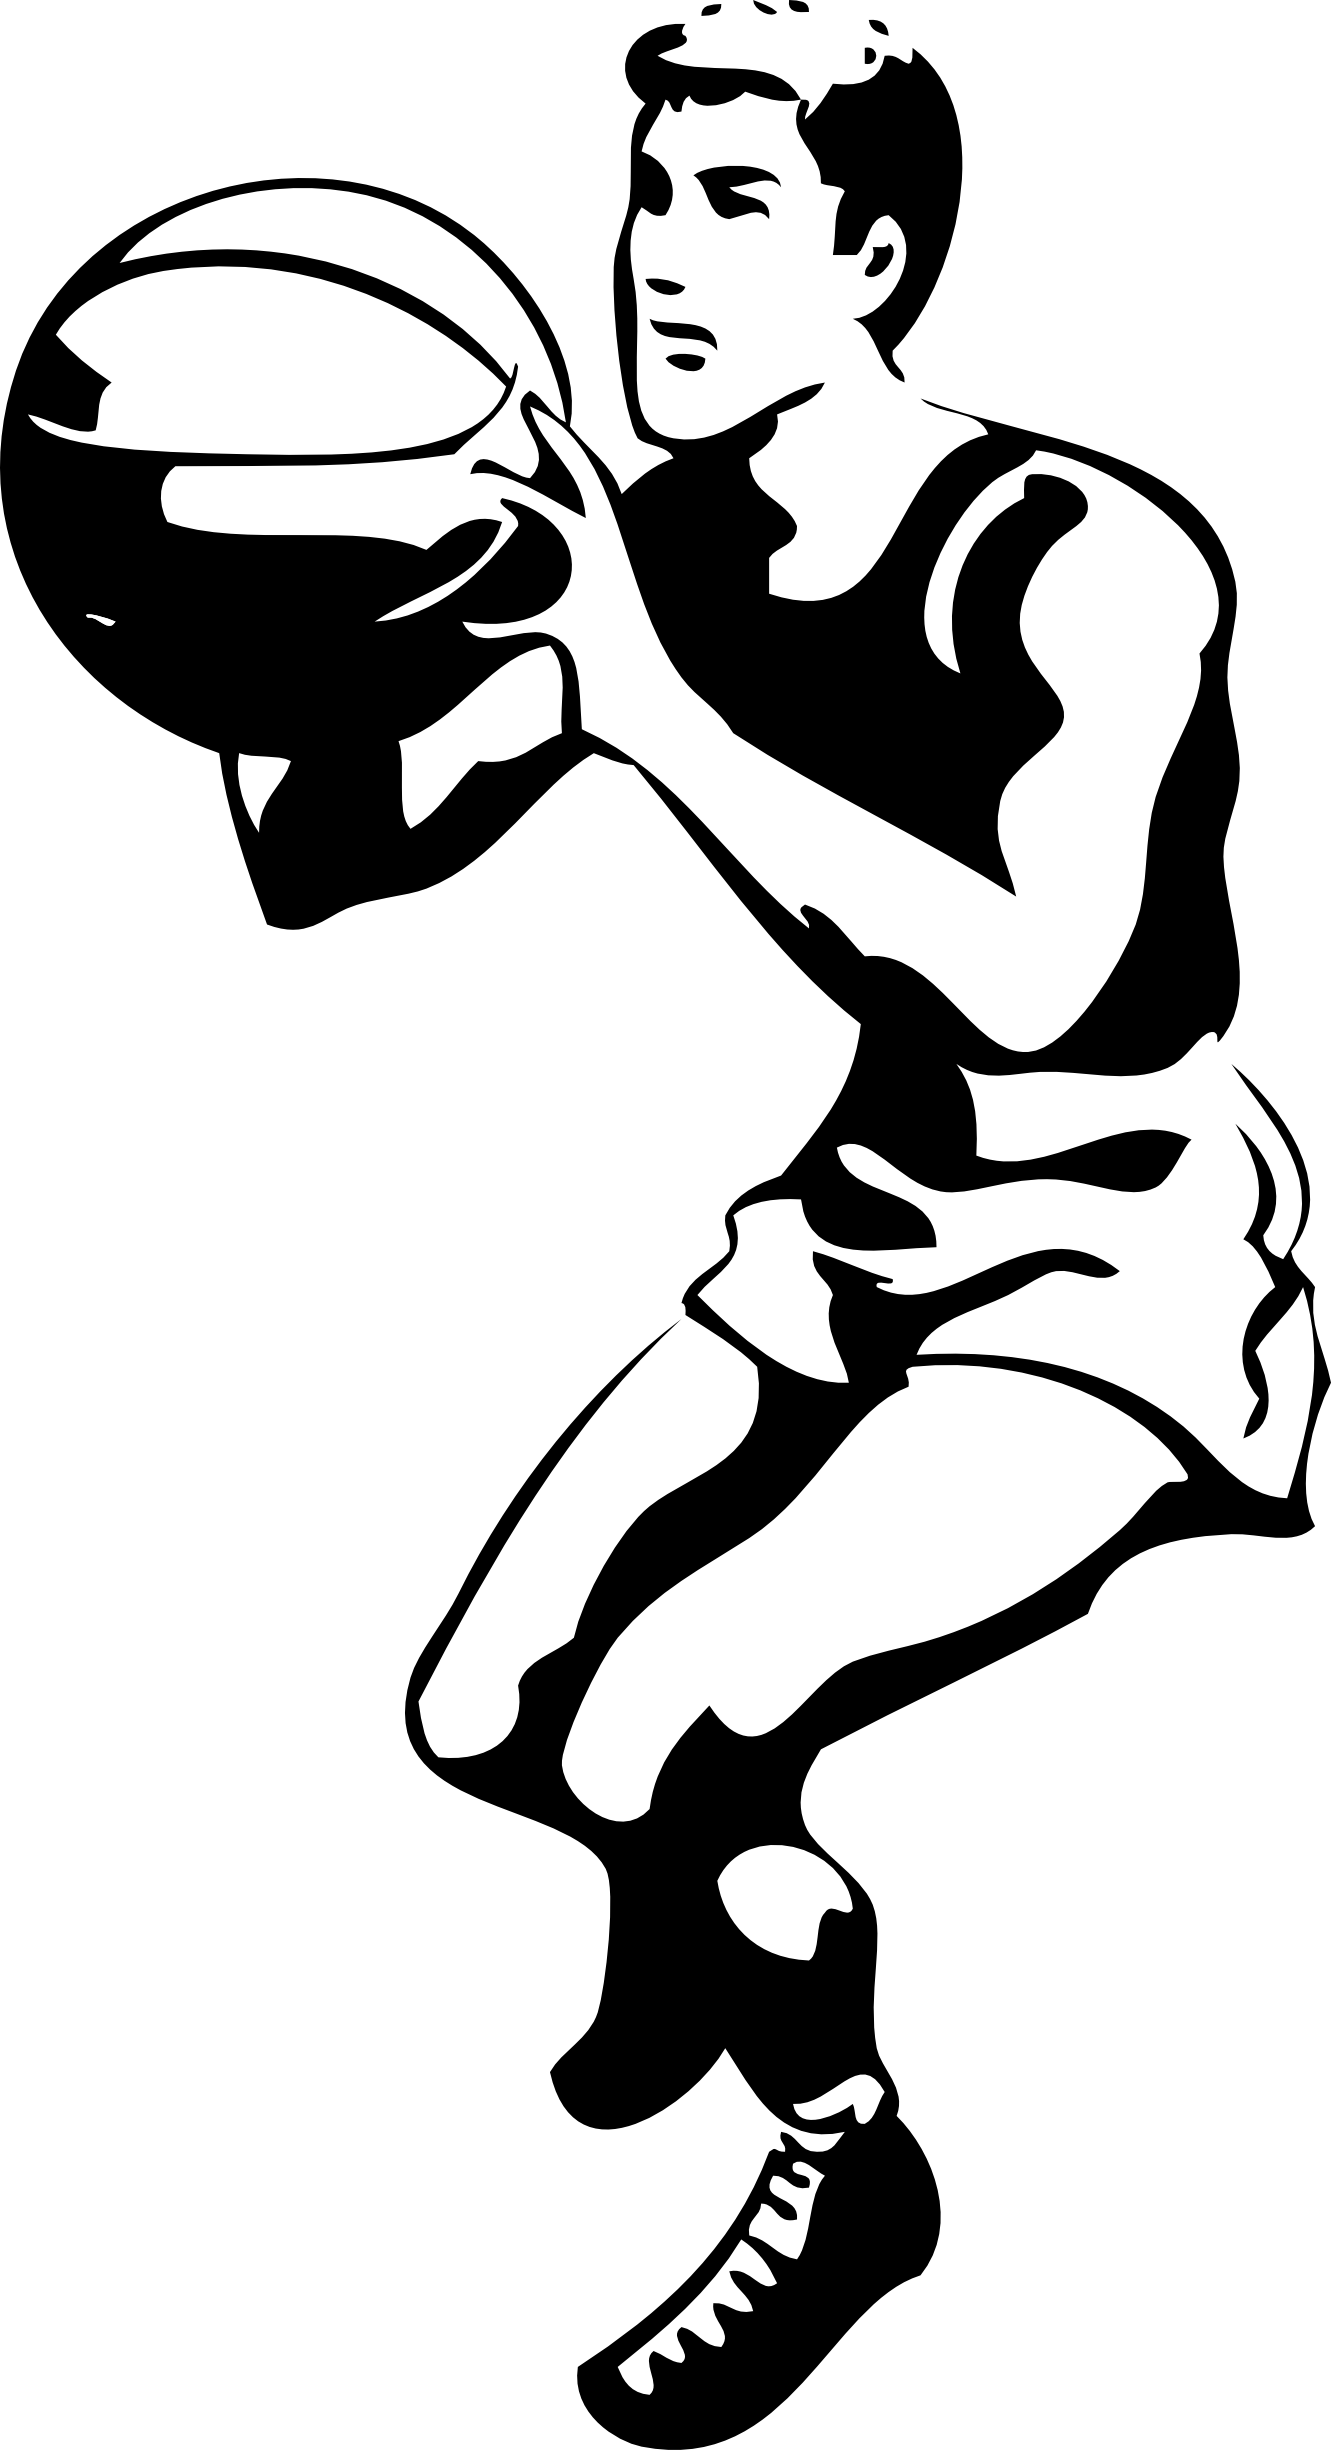 Passing basketball clipart royalty free download Basketball Player Clipart Black And White | Clipart Panda - Free ... royalty free download